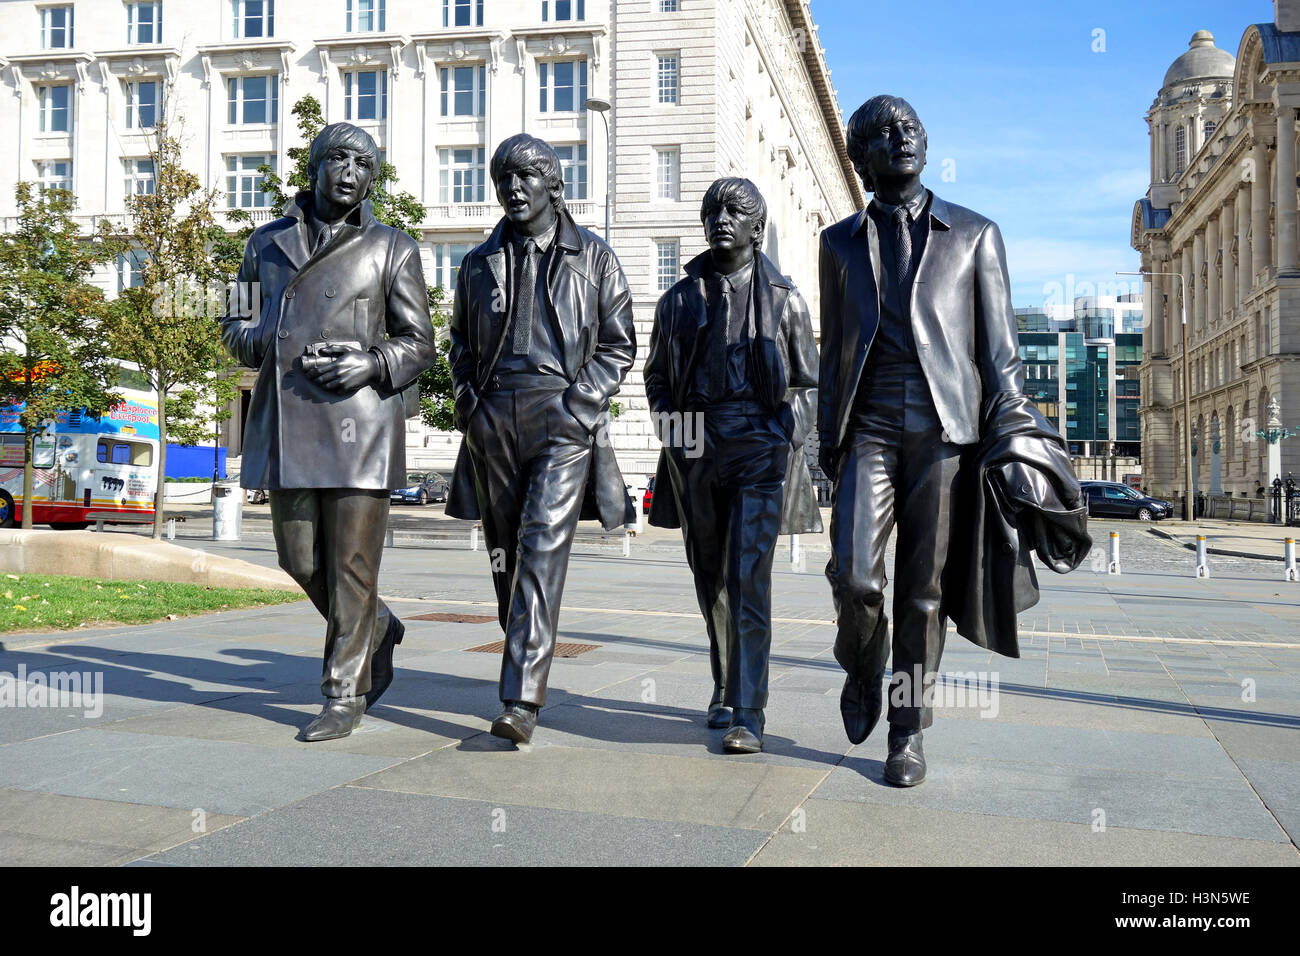 Statue of the Beatles on the waterfront in LIverpool, England, UK - Stock Image